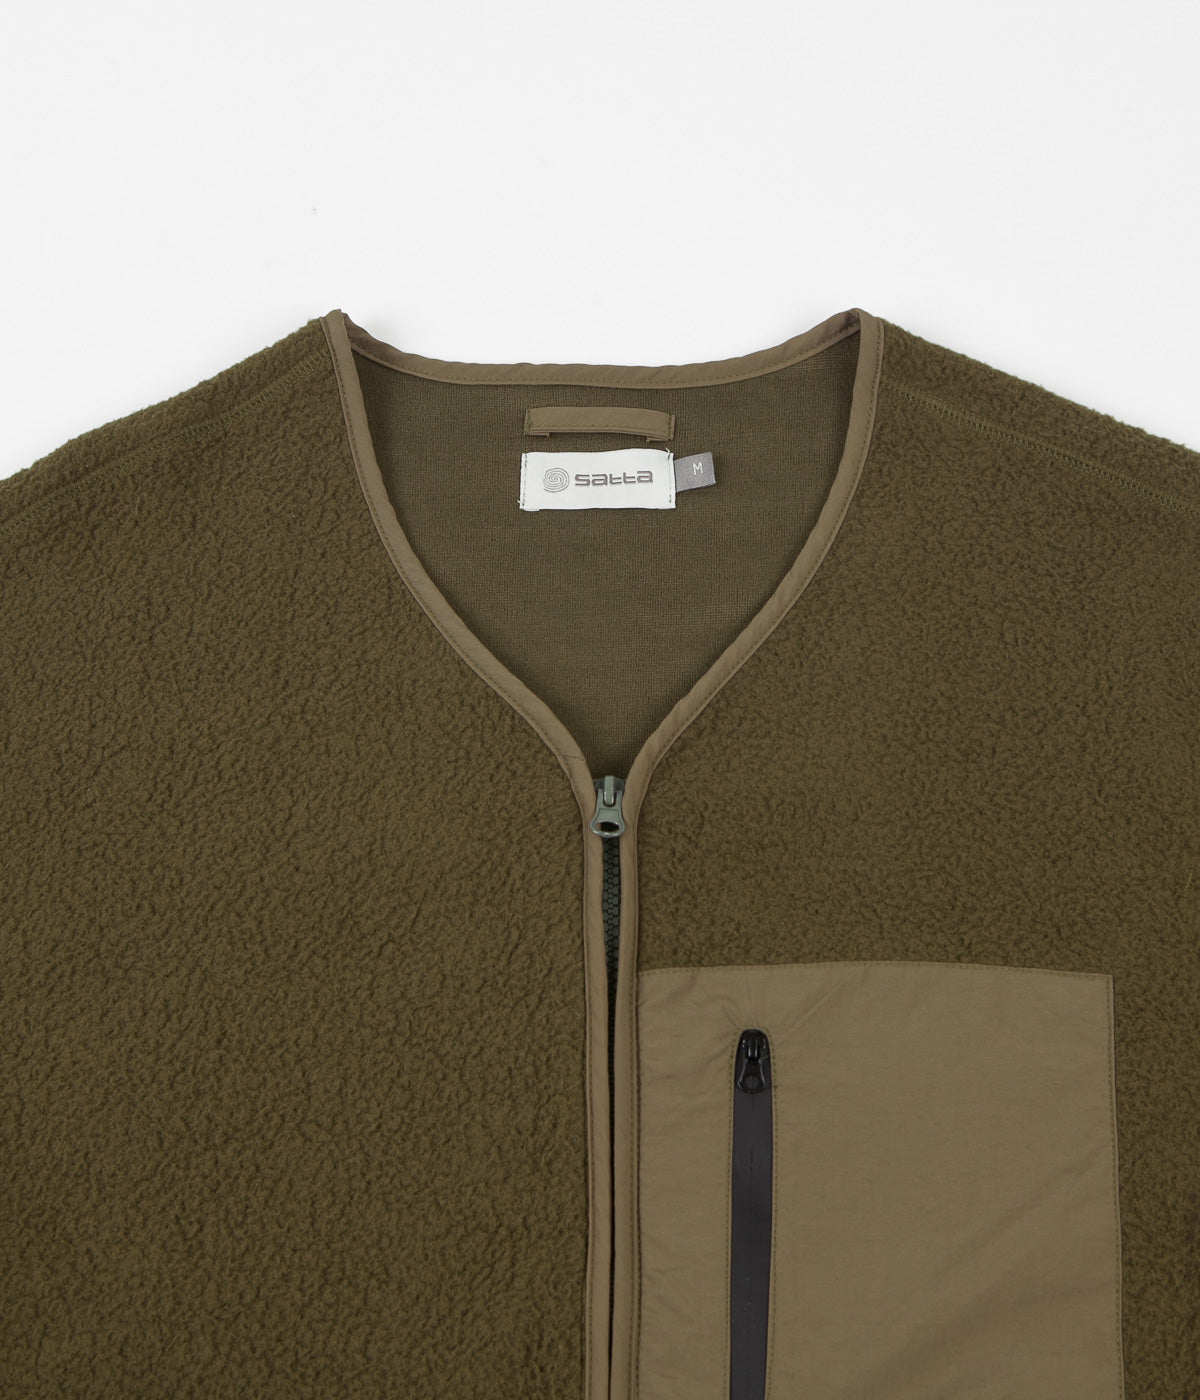 Satta Mikah Fleece Jacket - Moss